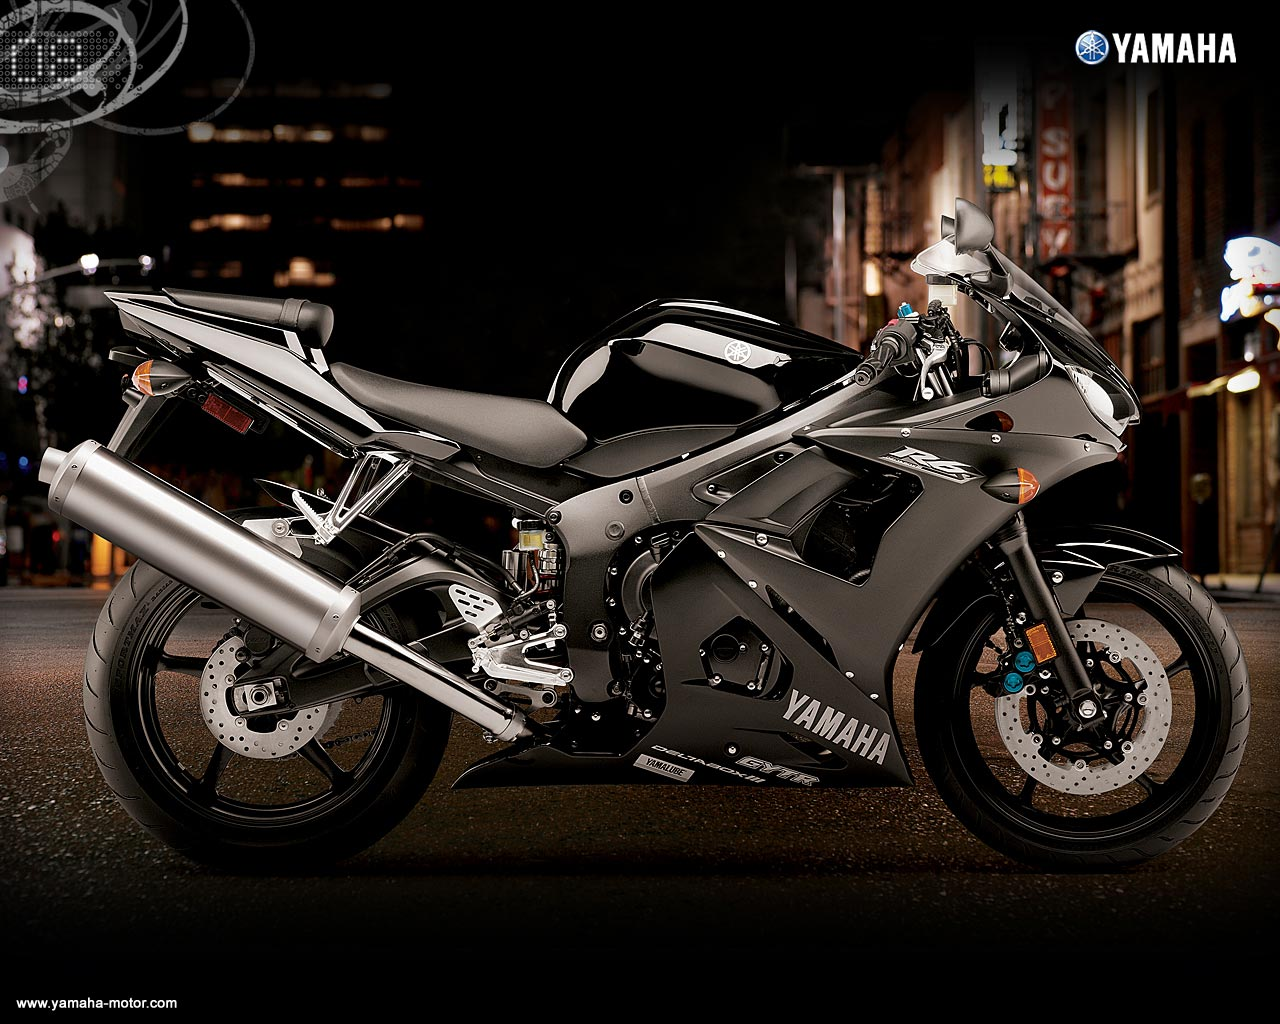 Yamaha yzf-r6s photo - 3